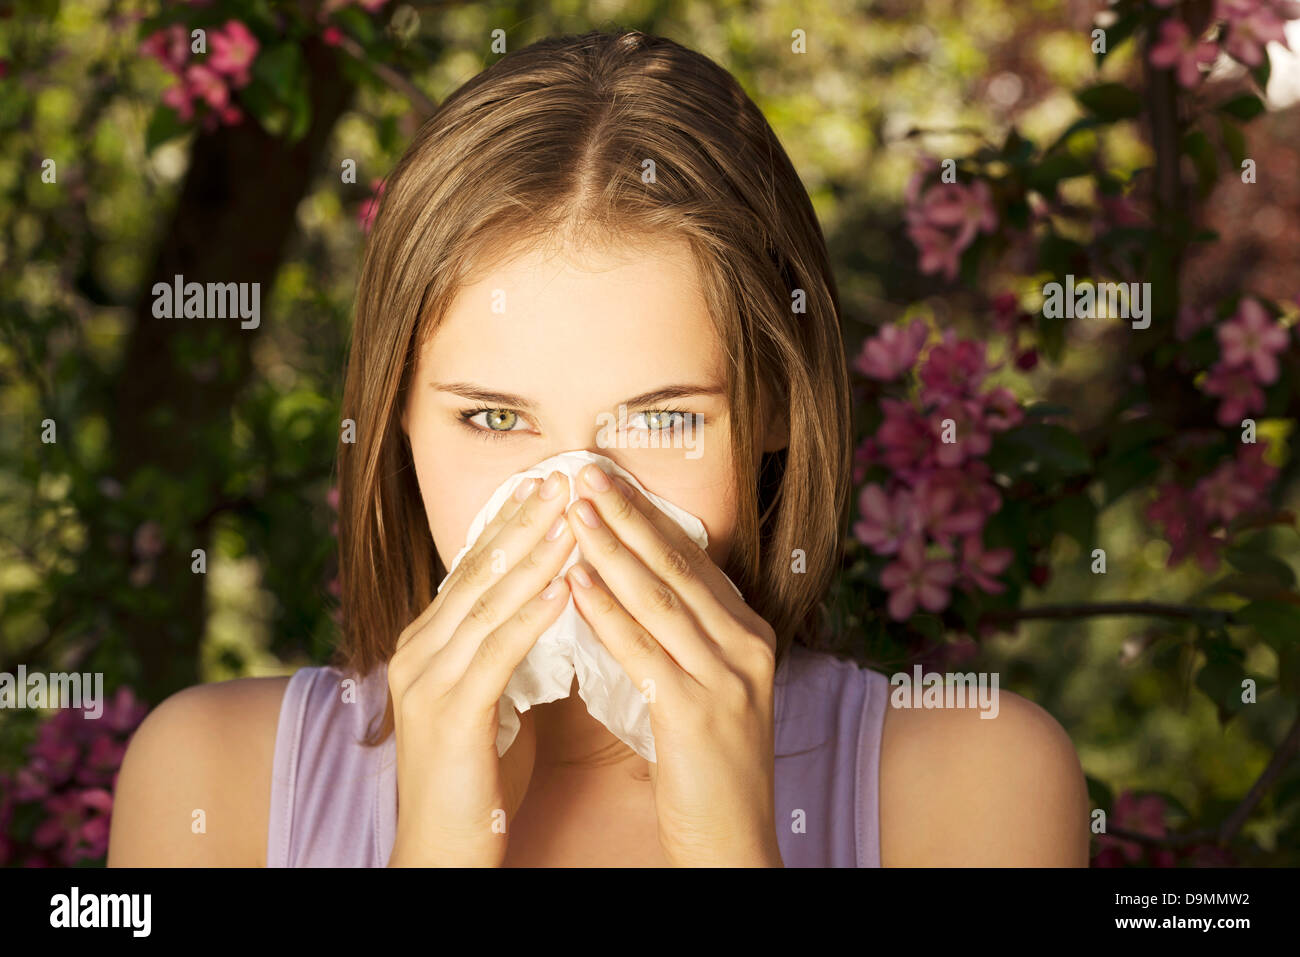 Young woman with allergy during sunny day is wiping her nose. - Stock Image